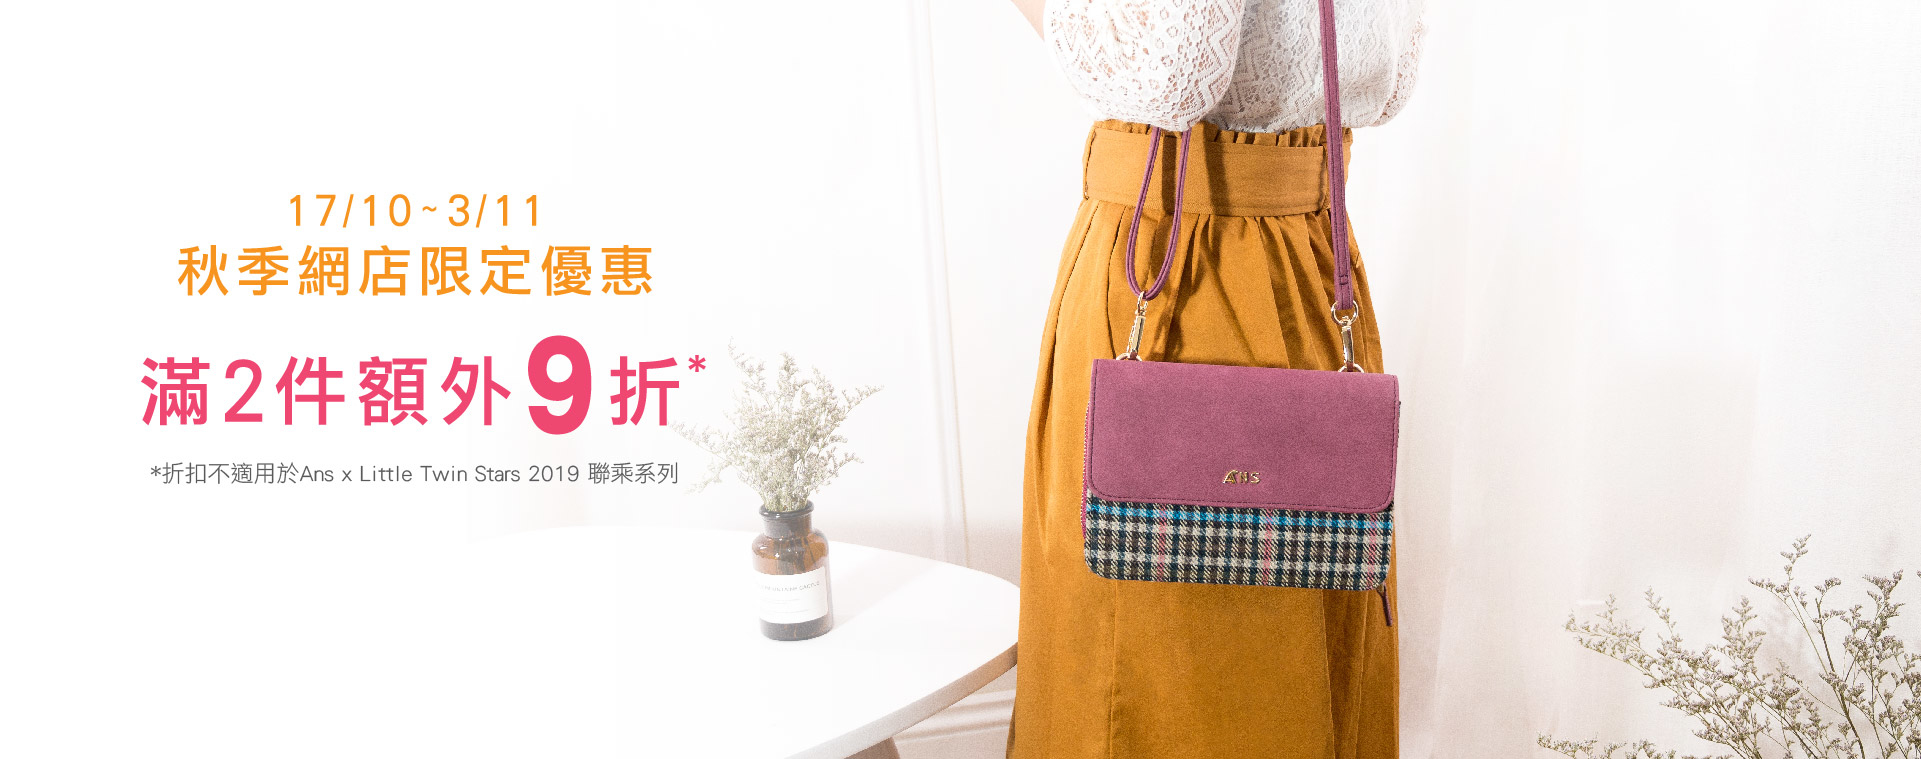 Ans網店限定優惠,網店限定,Ans Online Shop Exclusive Offer,Online Only